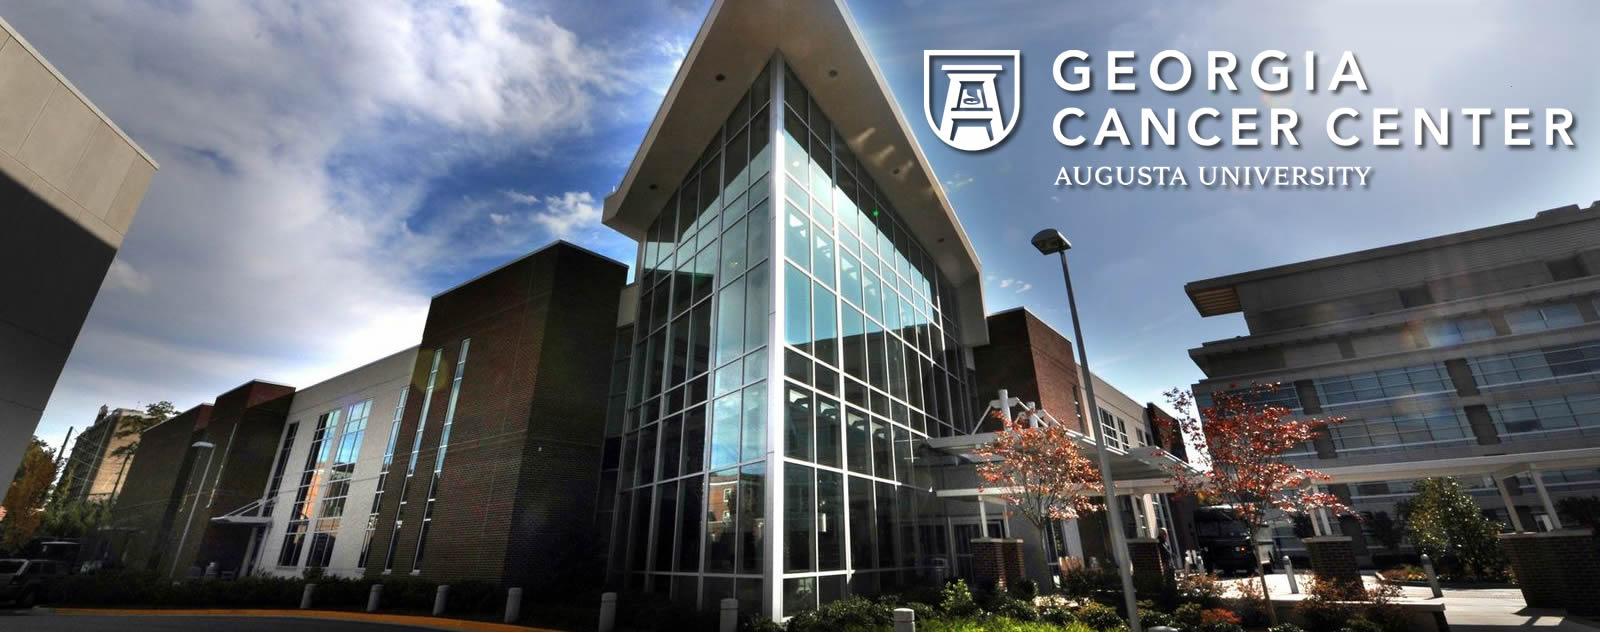 Georgia Cancer Center News & Announcements